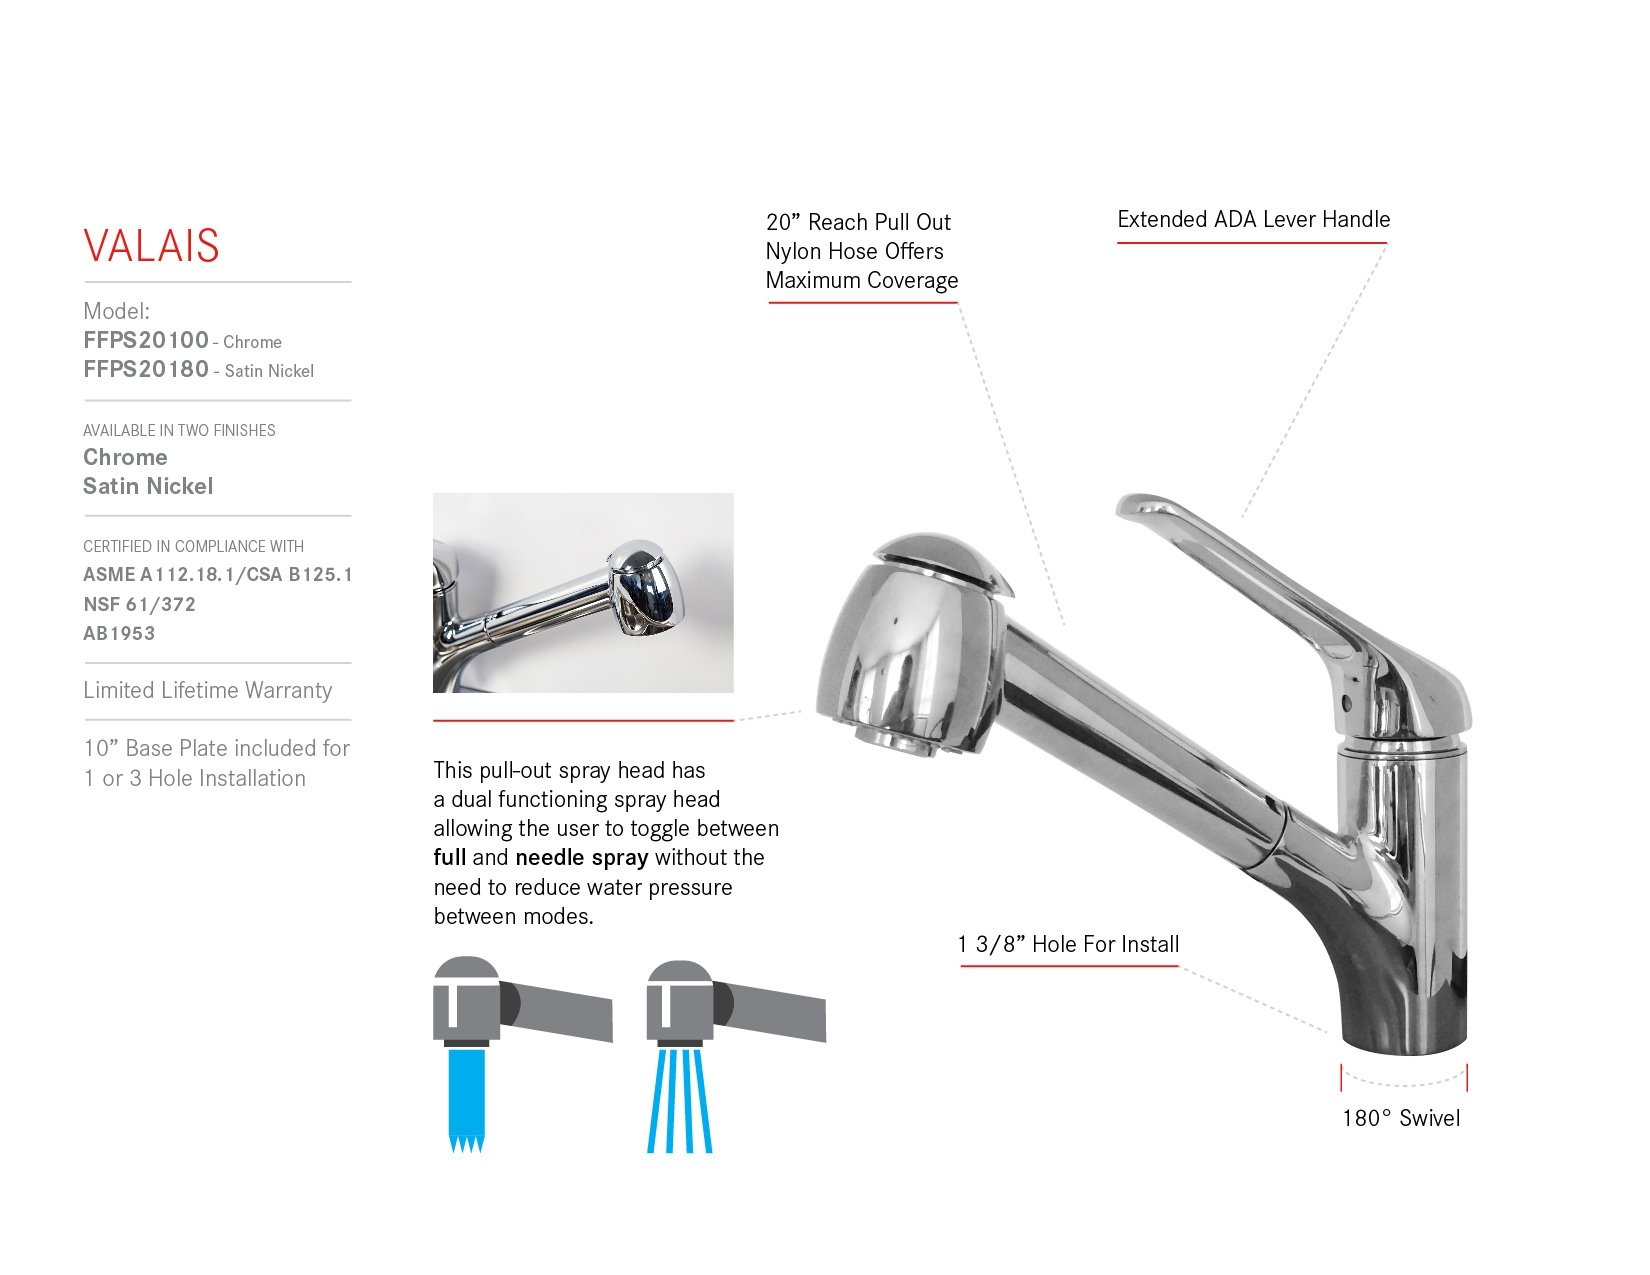 Franke FFPS20100 Valais Single Handle Pull-Out Kitchen Faucet, Chrome by Franke (Image #4)